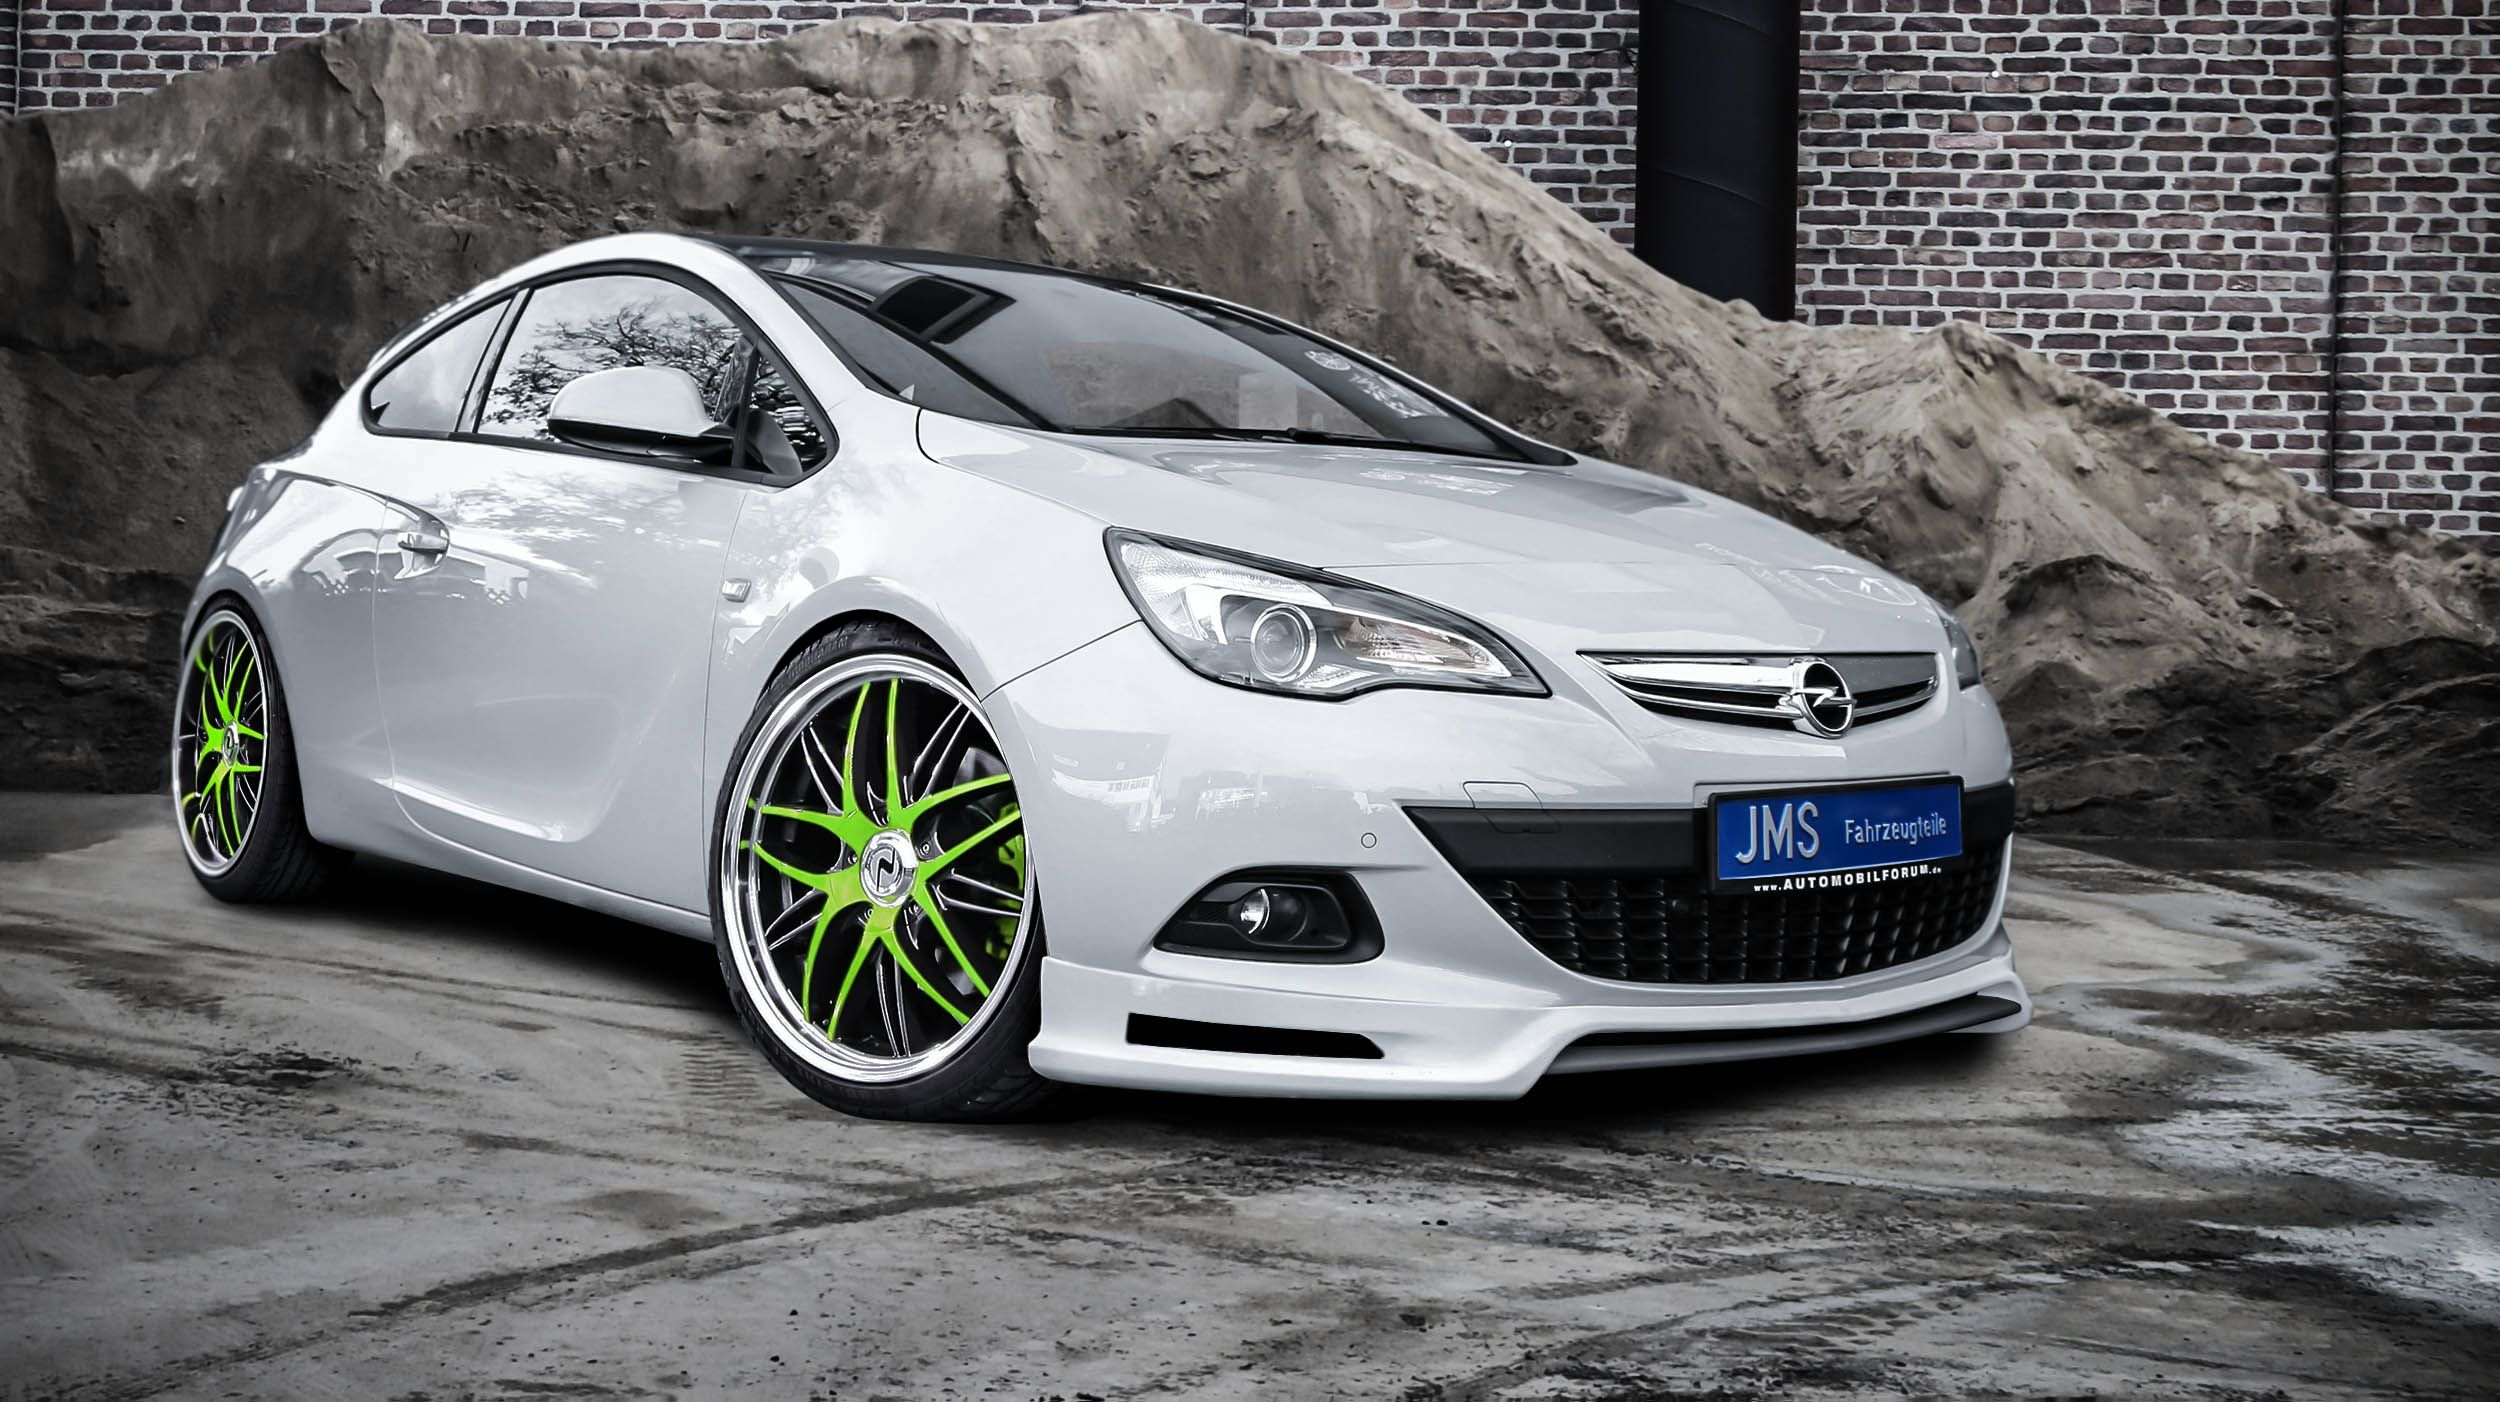 Jms Opel Astra J Gtc Coupe Shows Exclusive Styling In 2020 Opel Top Cars European Cars